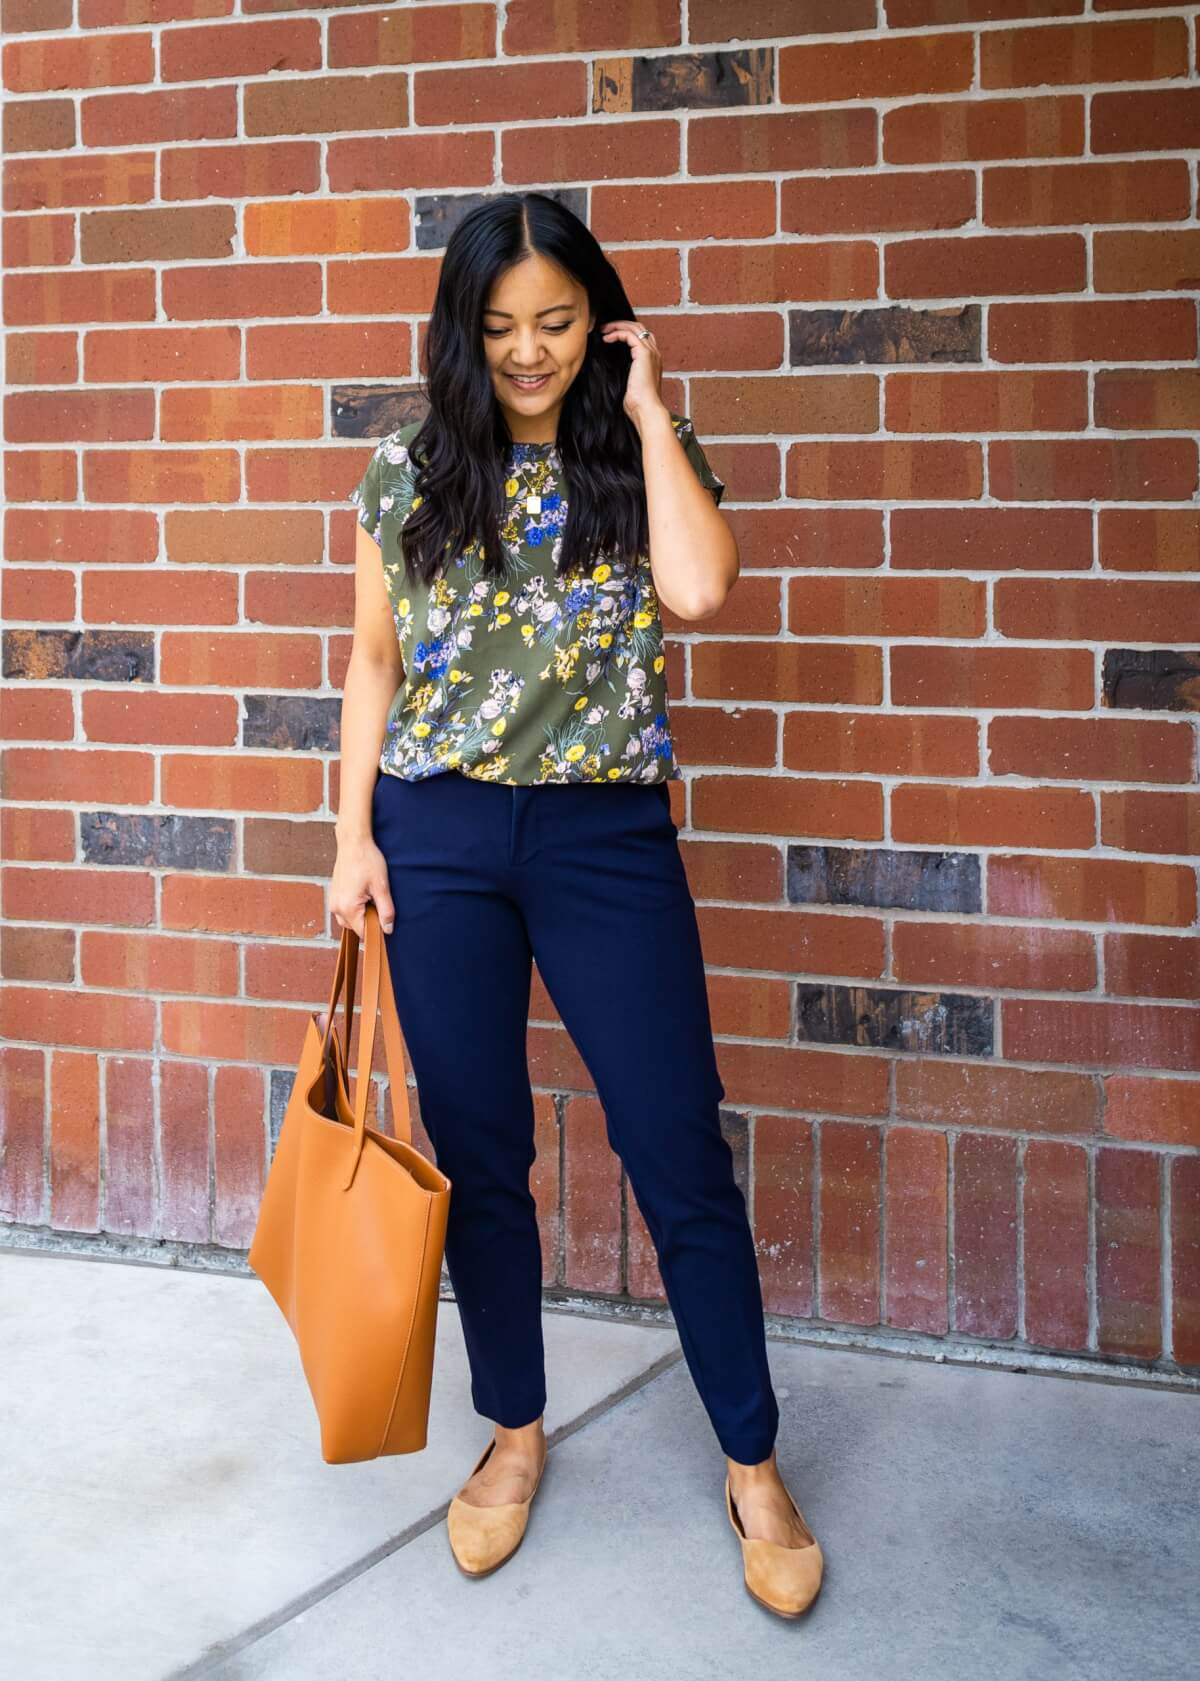 Summer to Fall Nicer Casual Outfit: olive floral short sleeve blouse + navy pants + tan suede flats + gold pendant necklace + tan tote